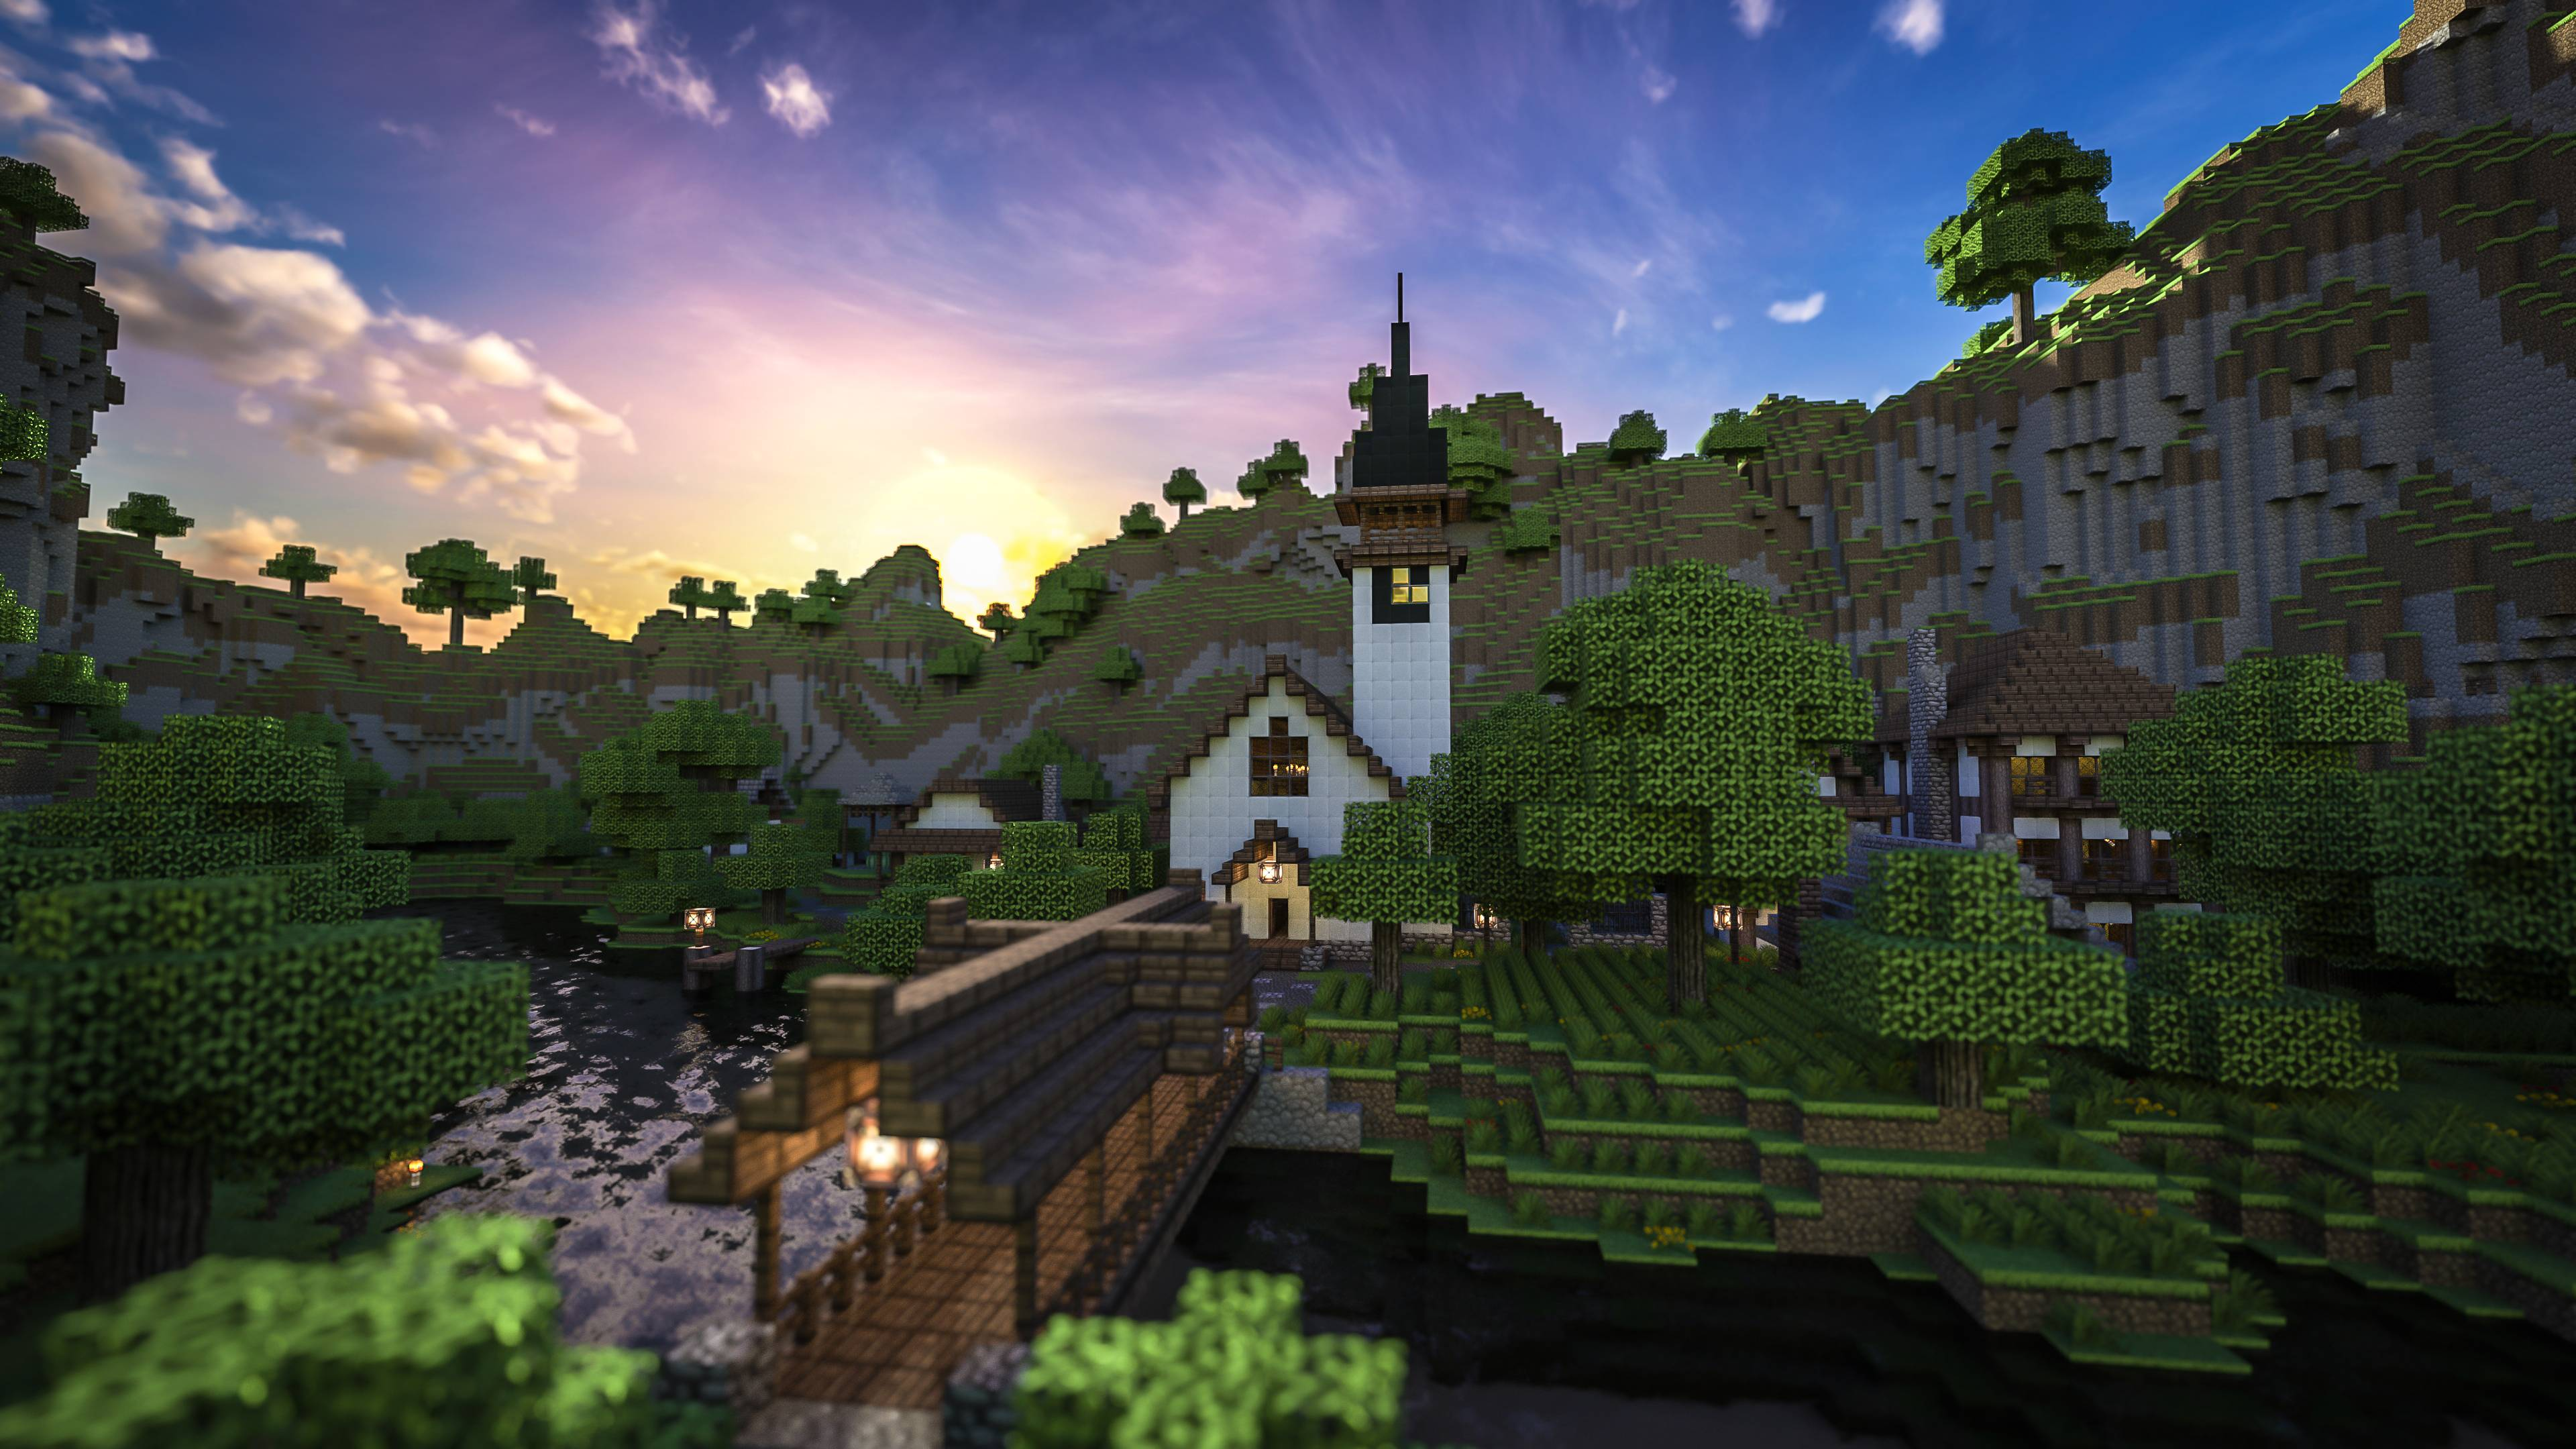 Minecraft City Hd Wallpaper